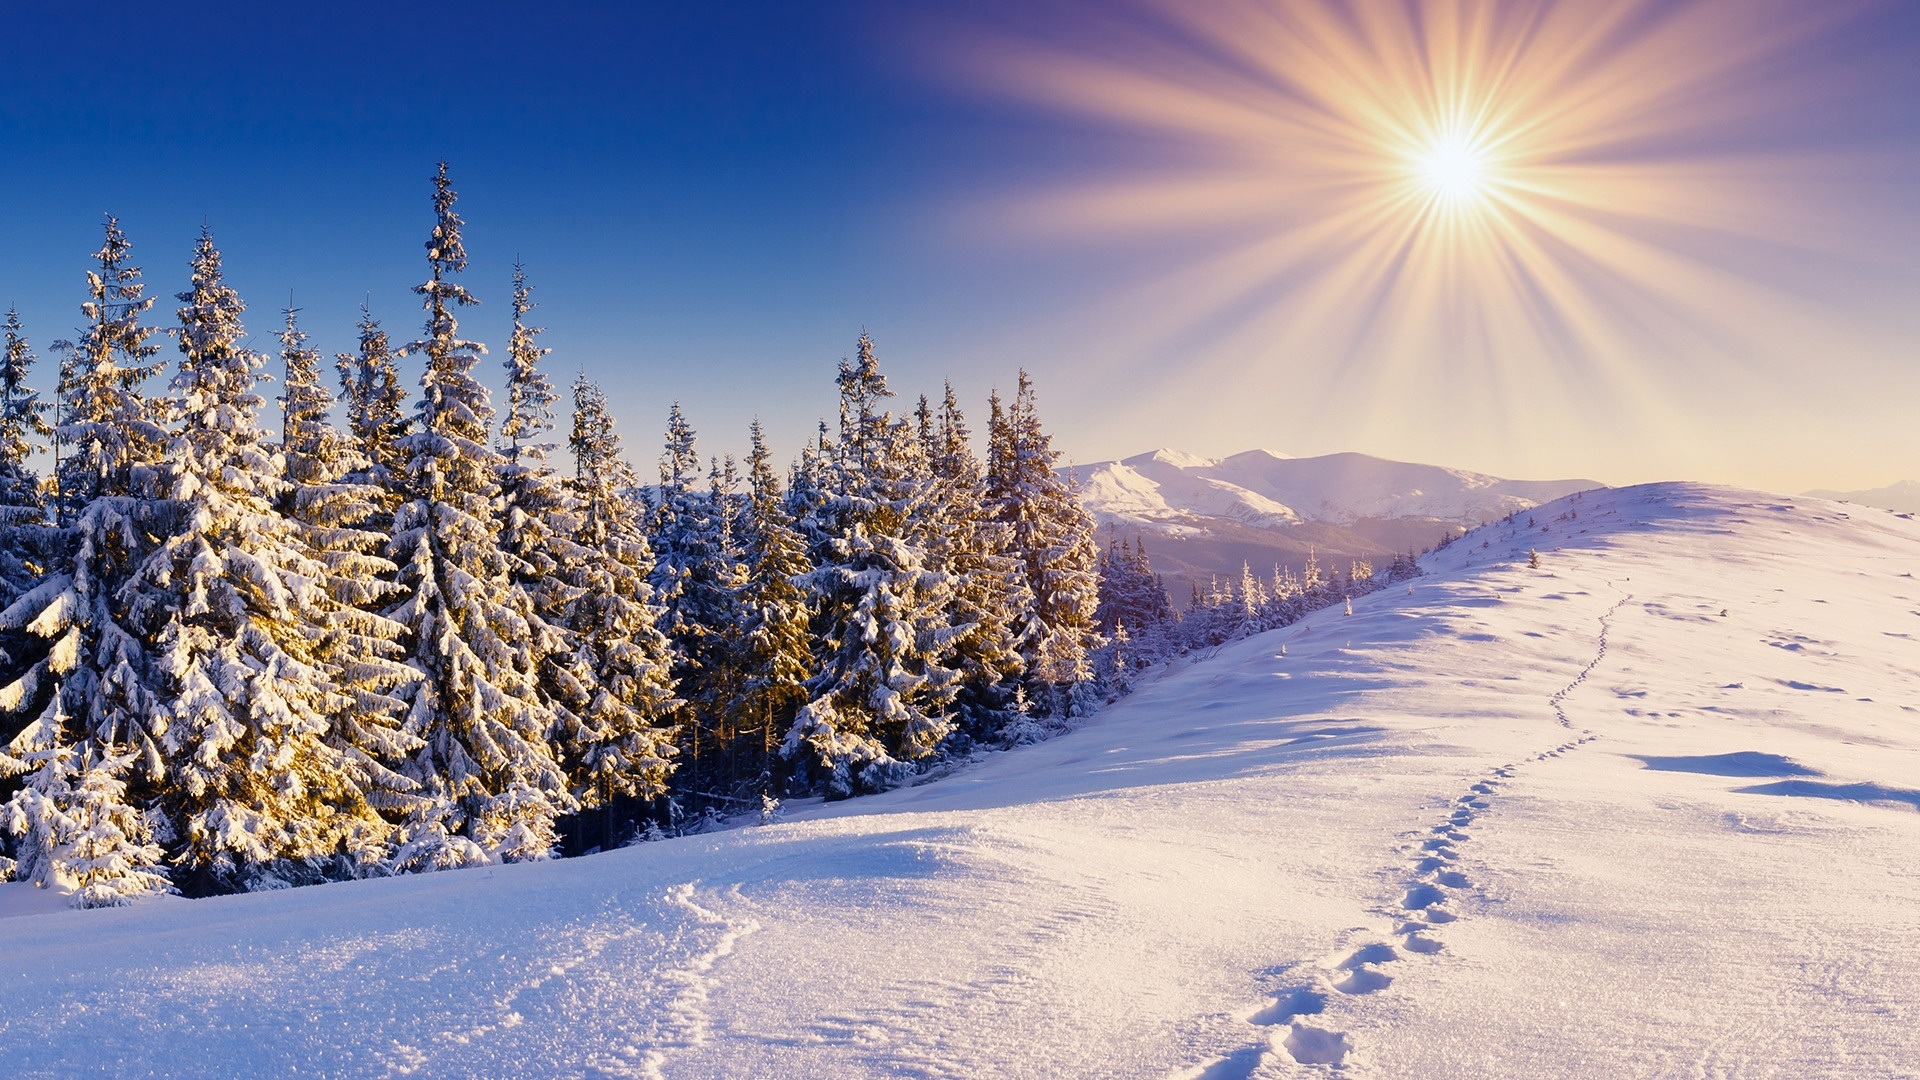 Beautiful Snowflake In The Sunlight: Winter Wallpapers High Quality